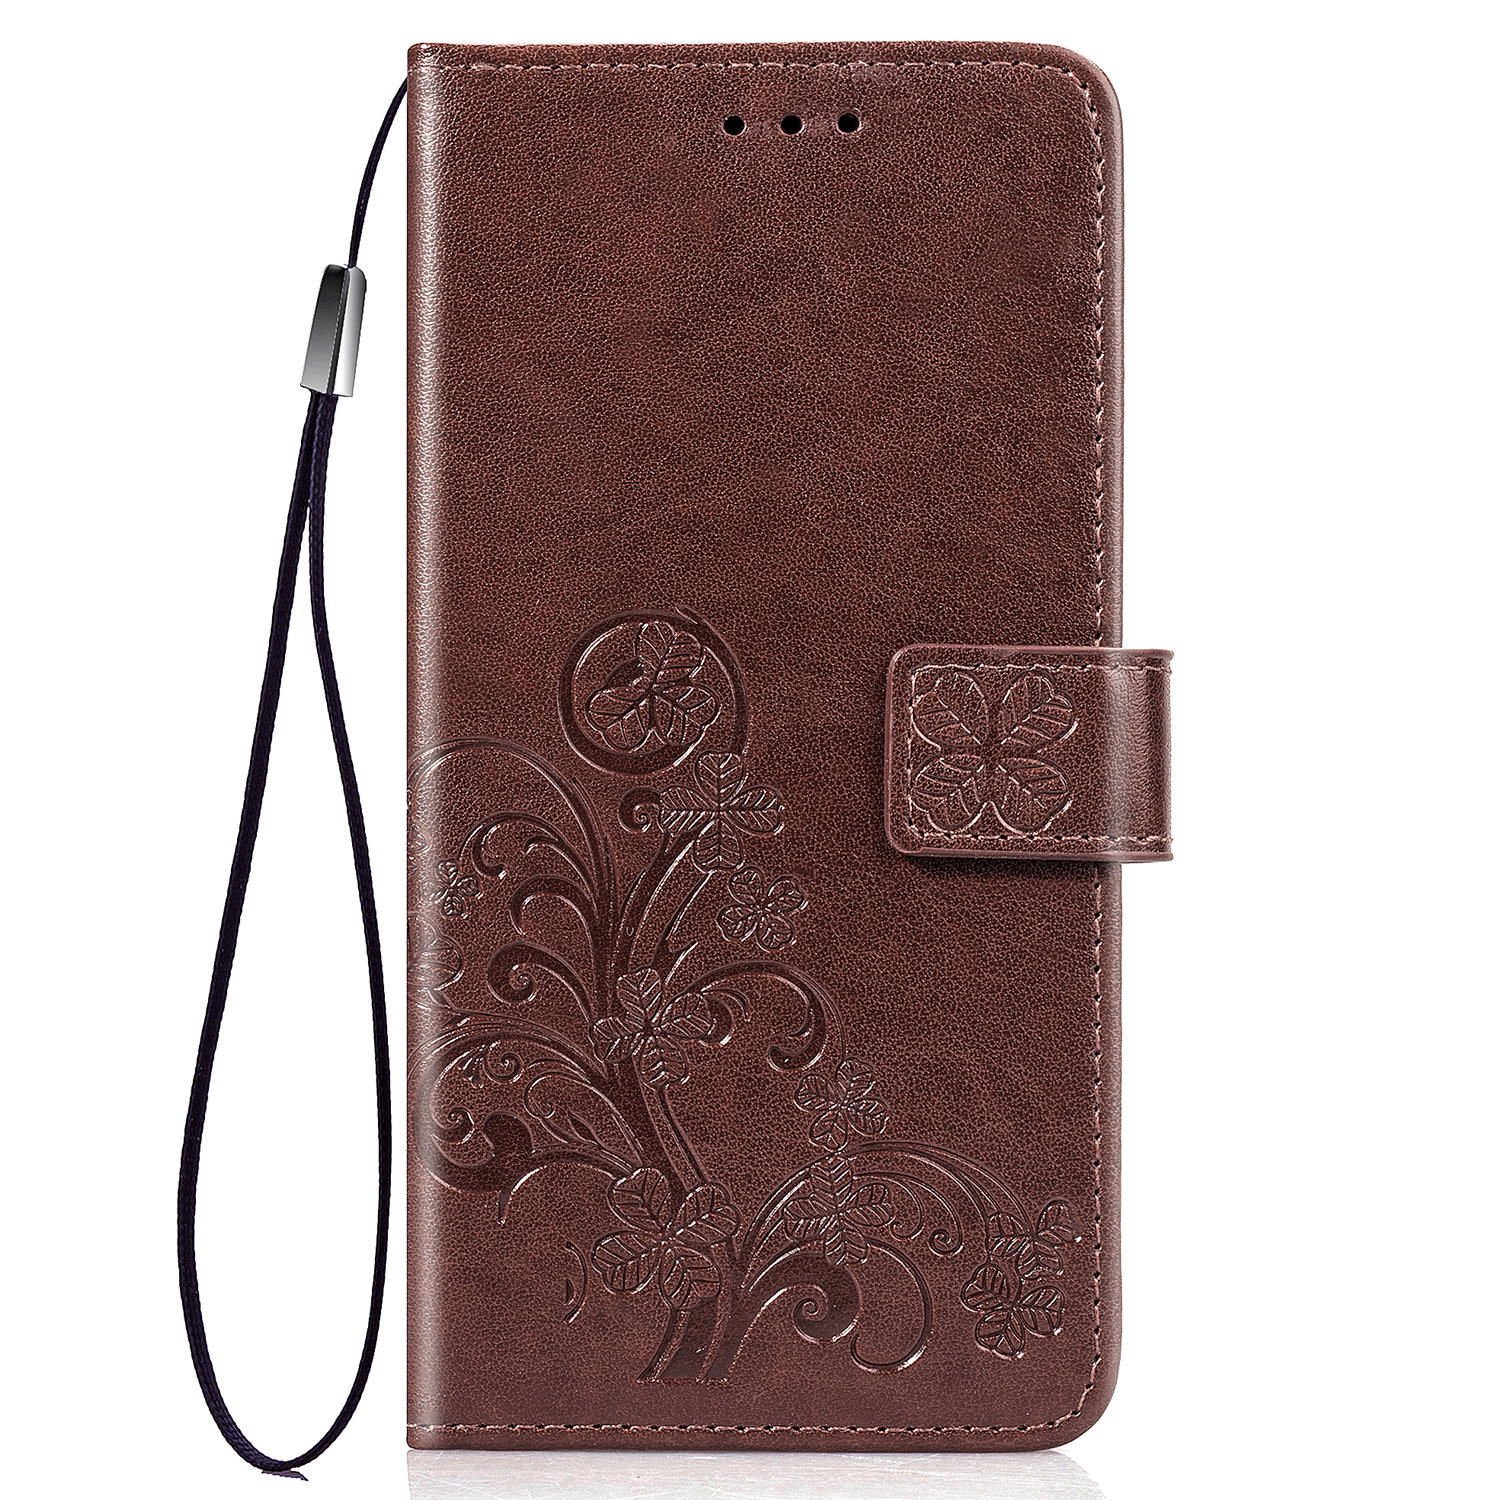 Leather case For <font><b>Nokia</b></font> 1 Plus Case Cover 5.45 Back Cover Phone Flip Case For <font><b>Nokia</b></font> 1 Plus Nokia1 1Plus Nokia1Plus <font><b>TA</b></font>-<font><b>1130</b></font> <font><b>TA</b></font>-111 image